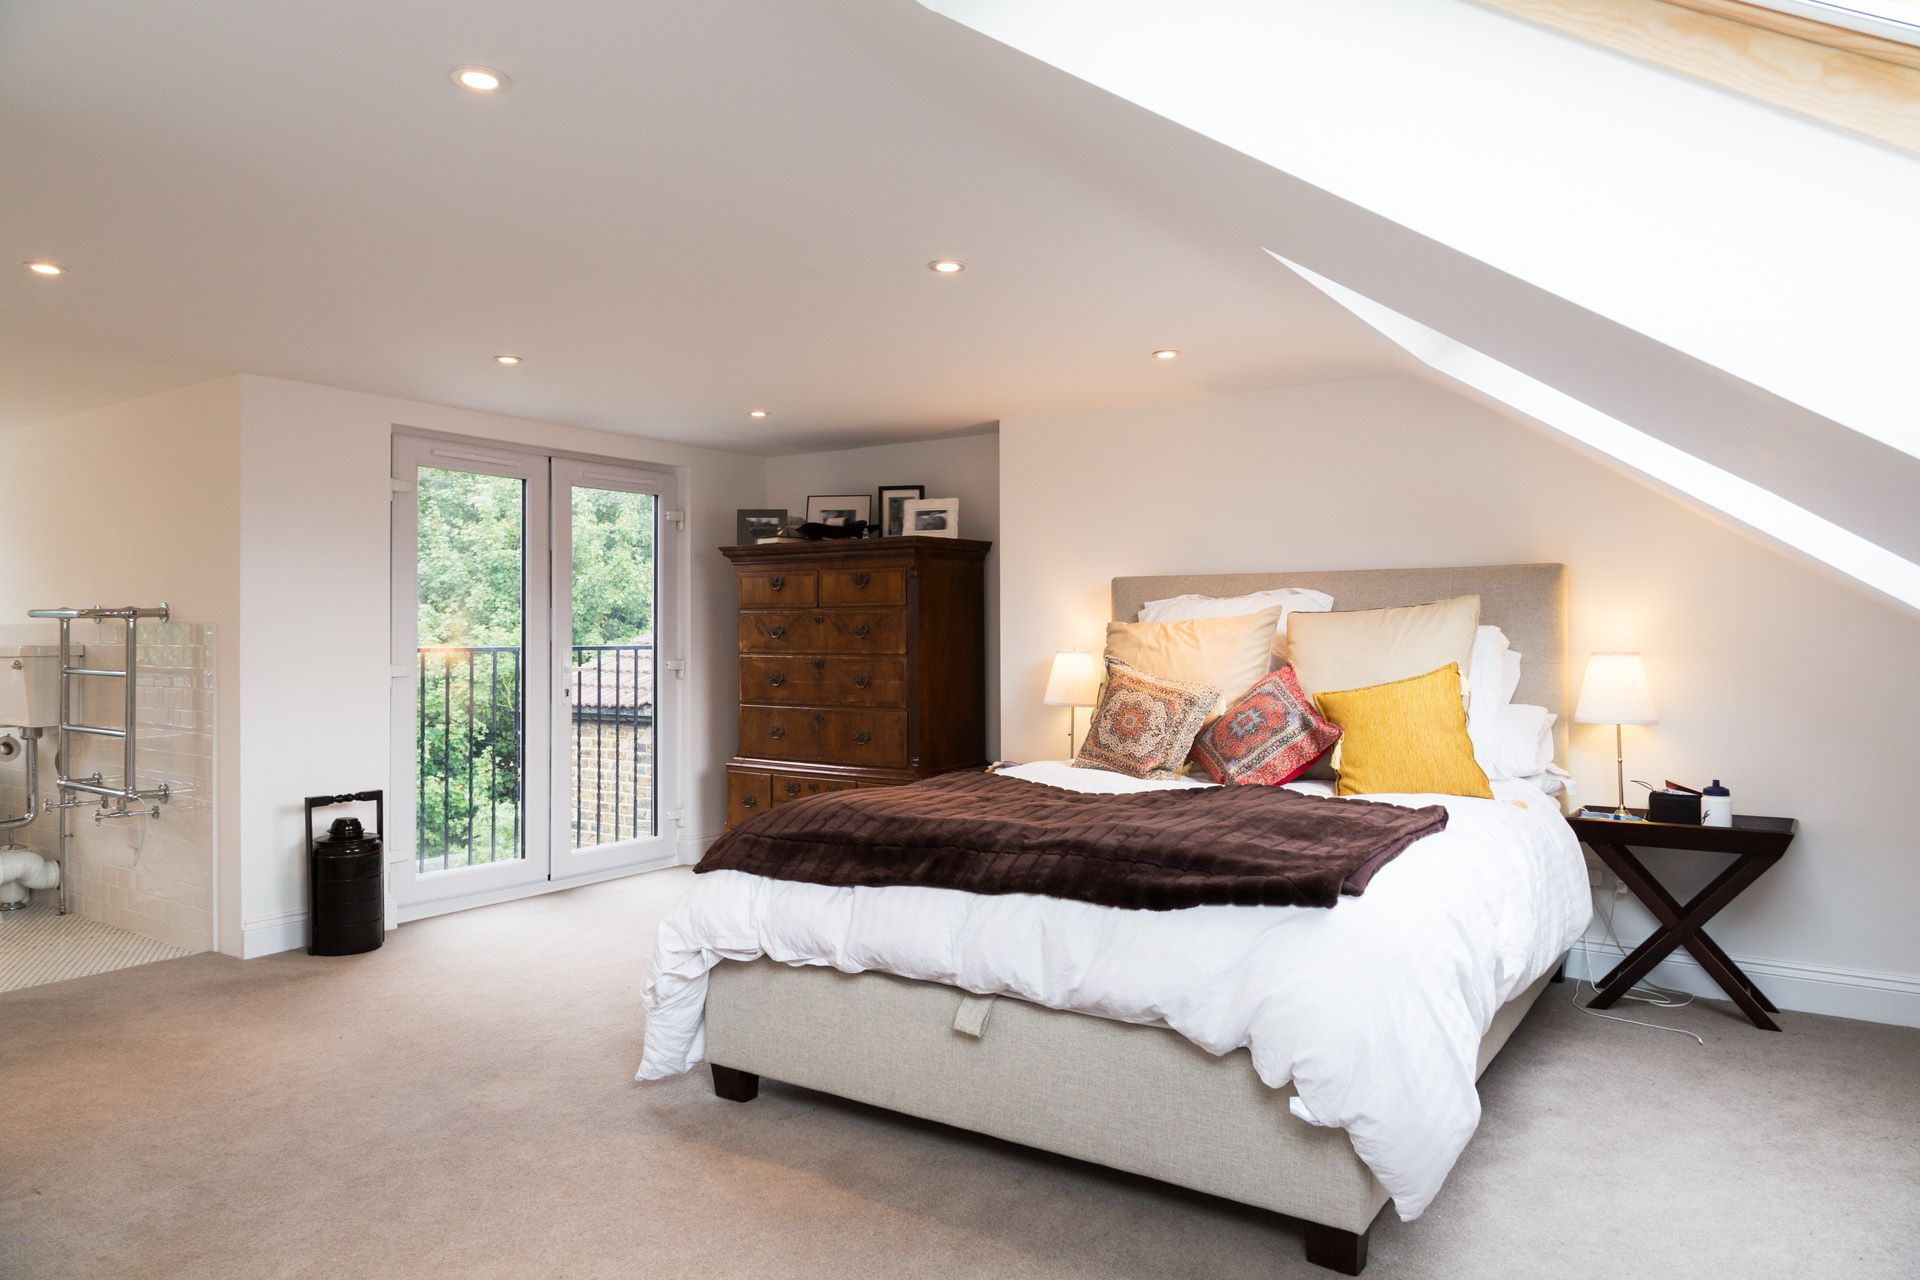 Loft room bedroom ideas  Bedroom with Juliet balcony part of a loft conversion in South East